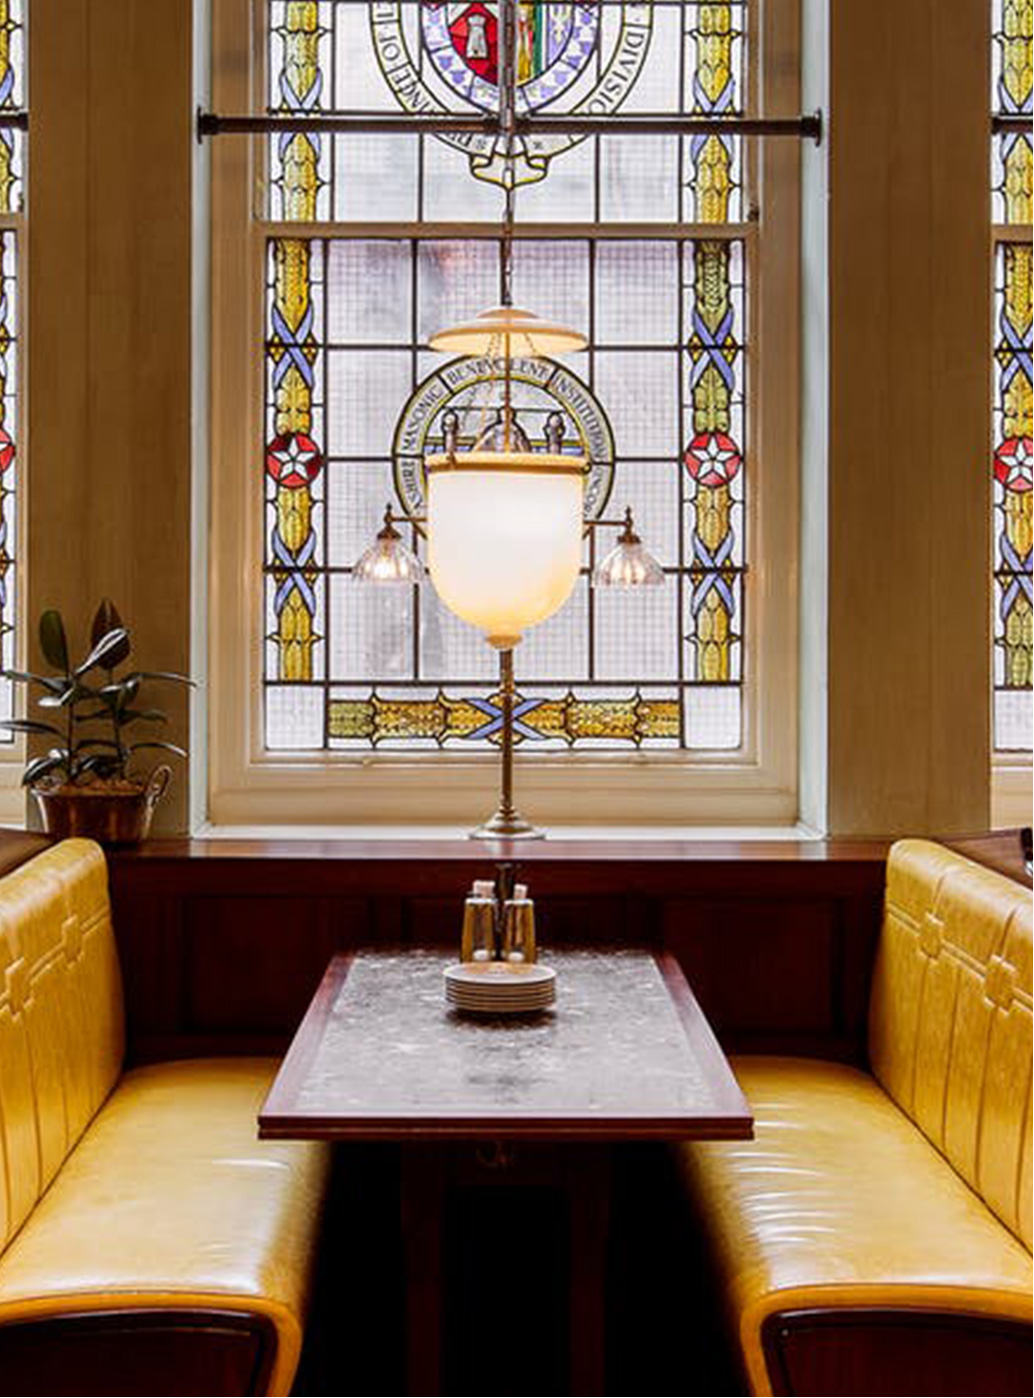 The stained glass window and yellow banquette leather sofa of Dishoom in Manchester.